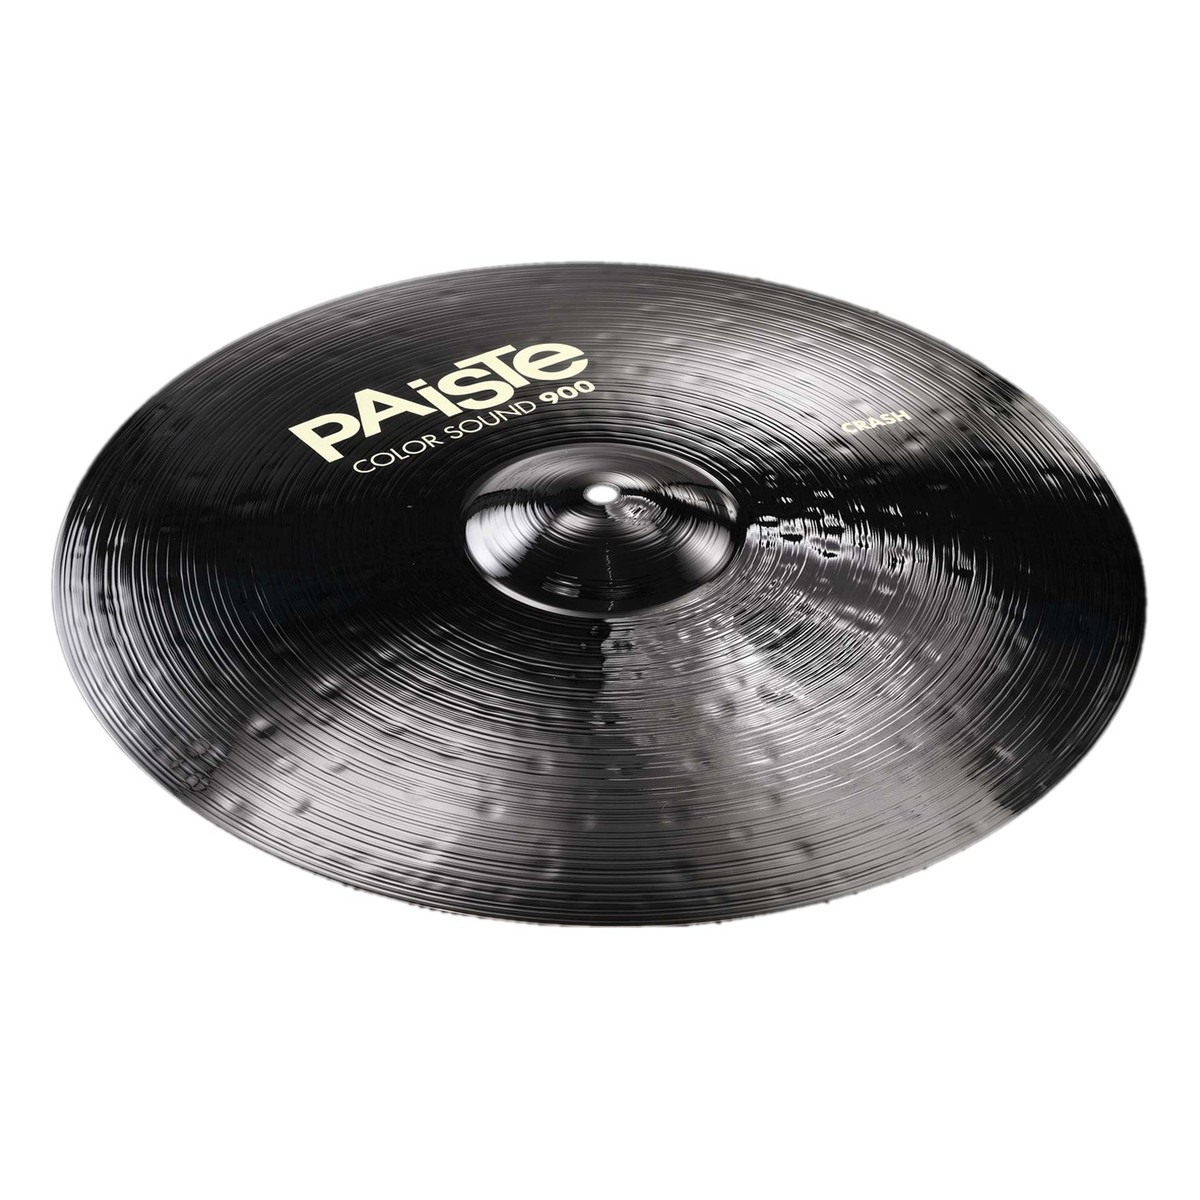 paiste color sound 900 black 19 39 39 crash cymbal at gear4music. Black Bedroom Furniture Sets. Home Design Ideas